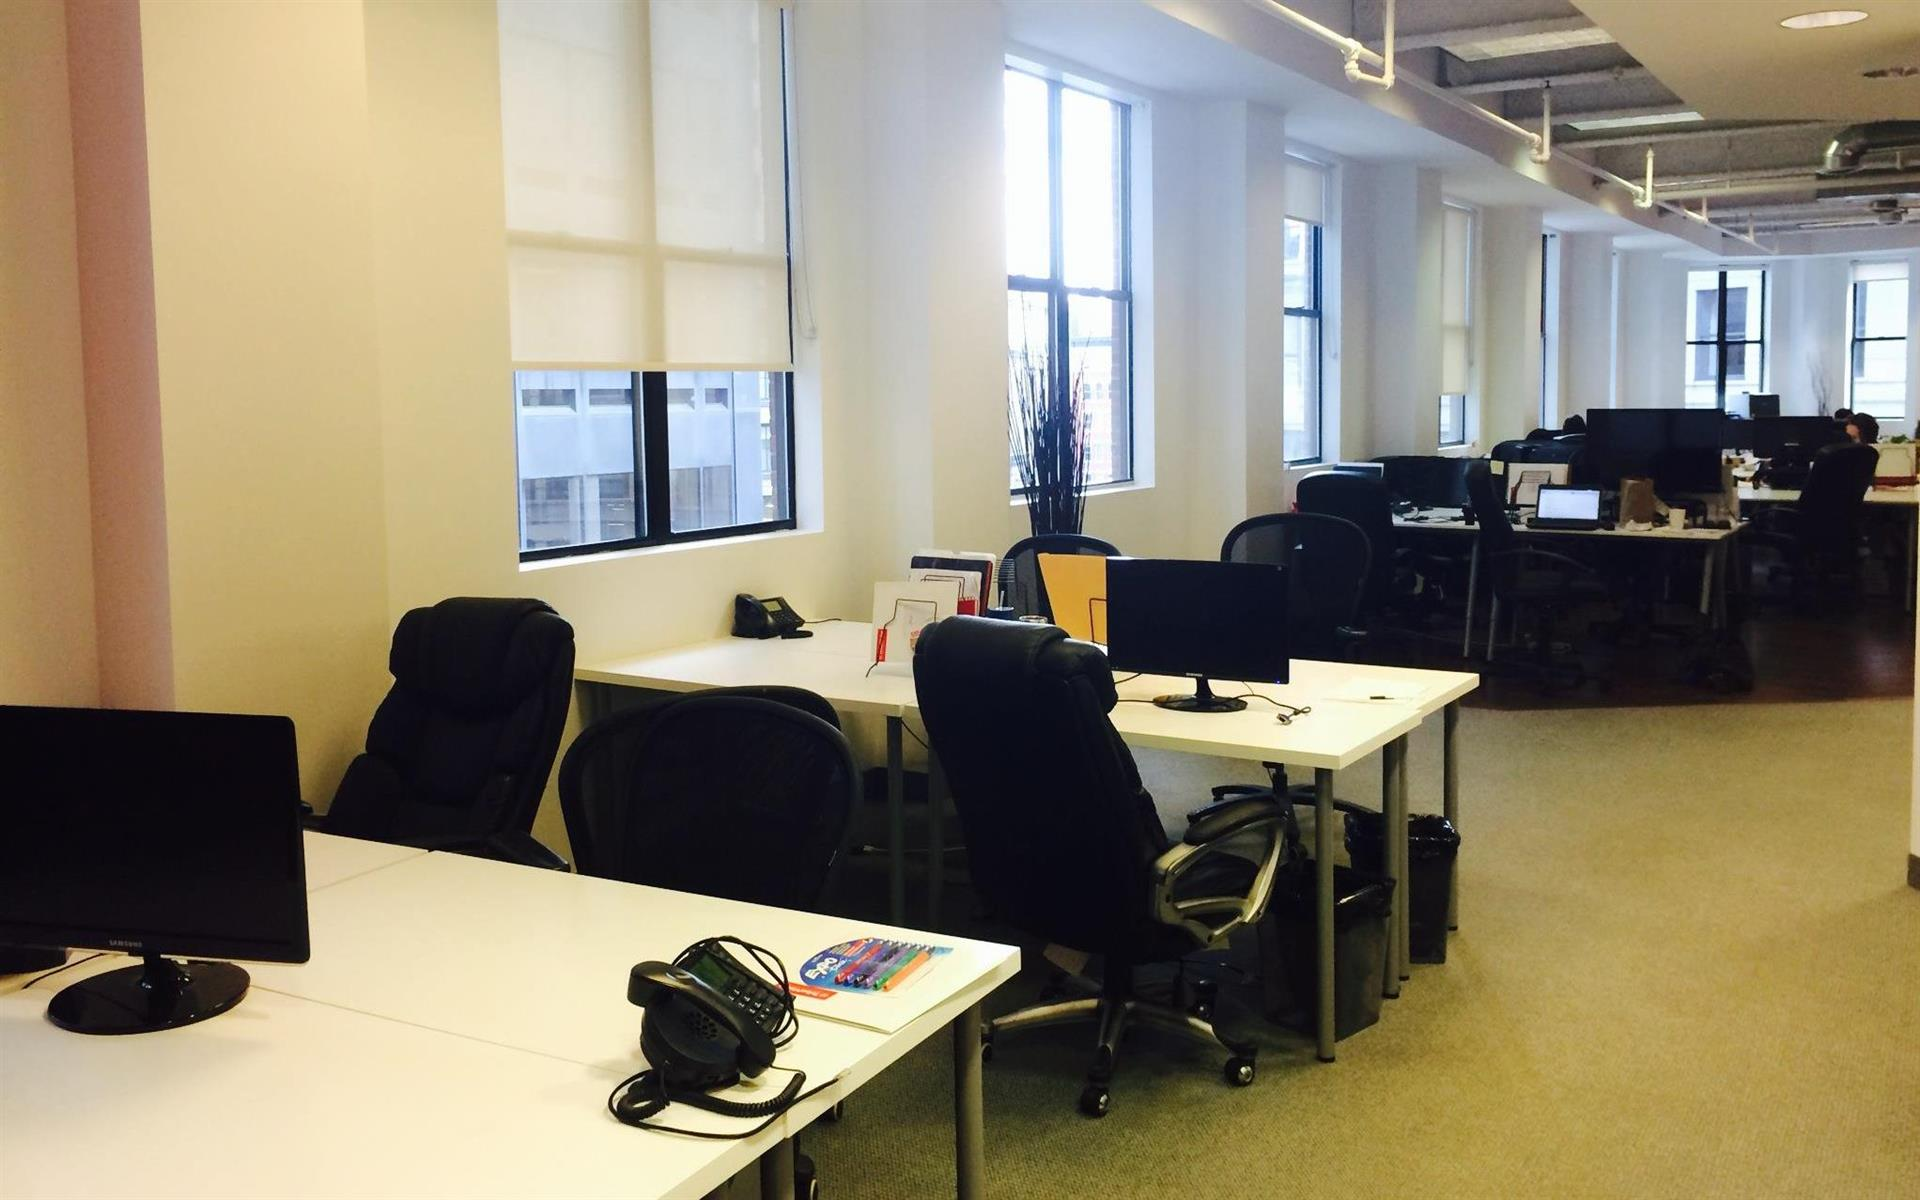 295 Devonshire - Financial District - Dedicated Desks for 4